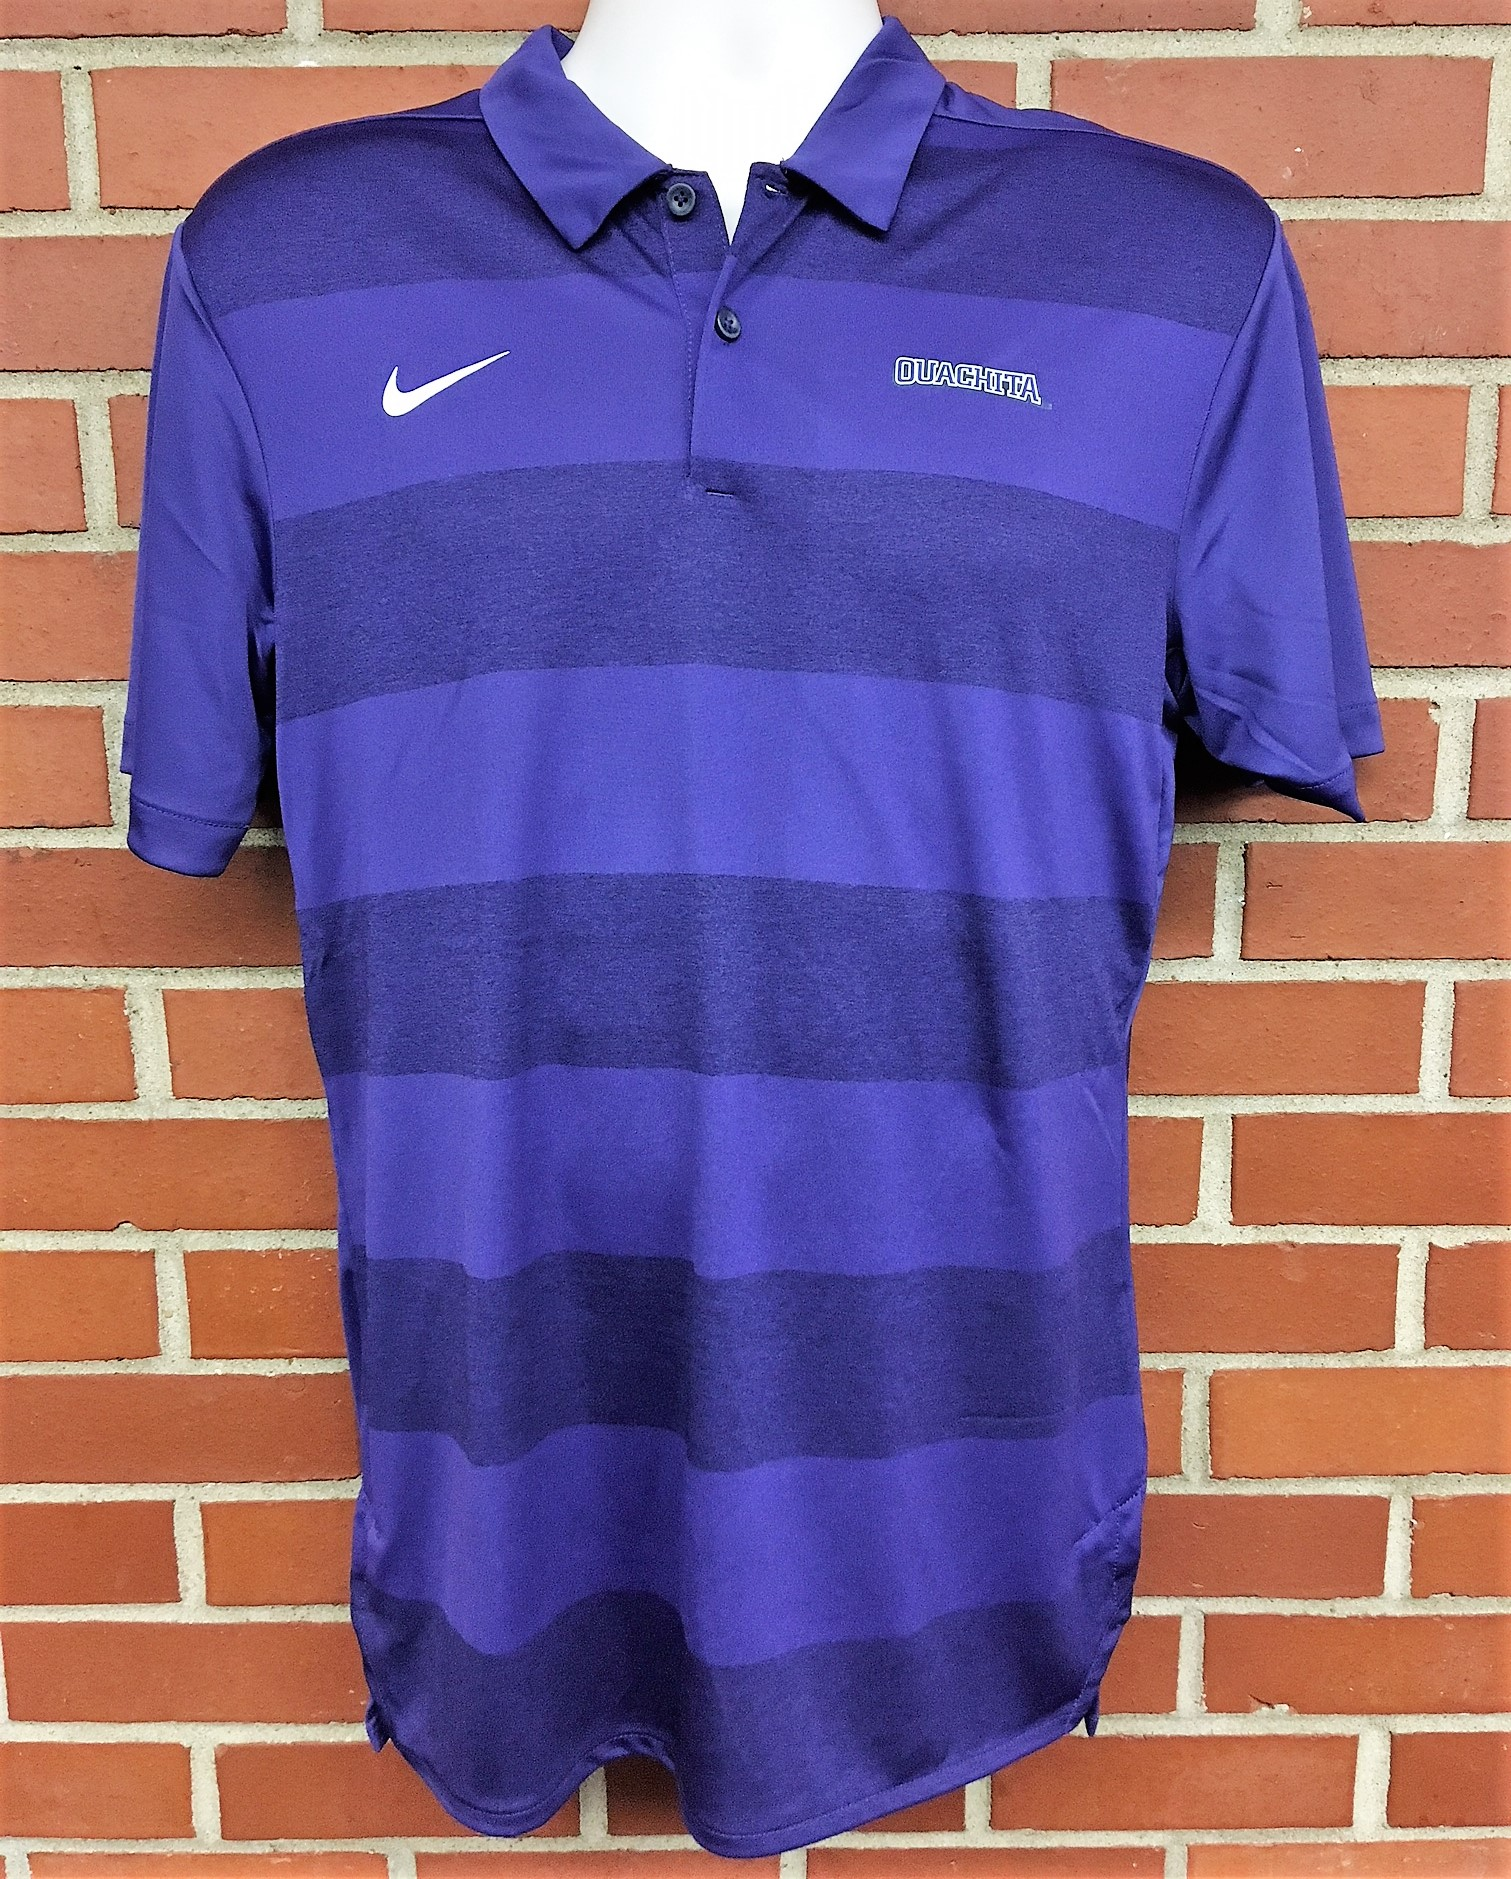 OUACHITA EARLY SEASON POLO